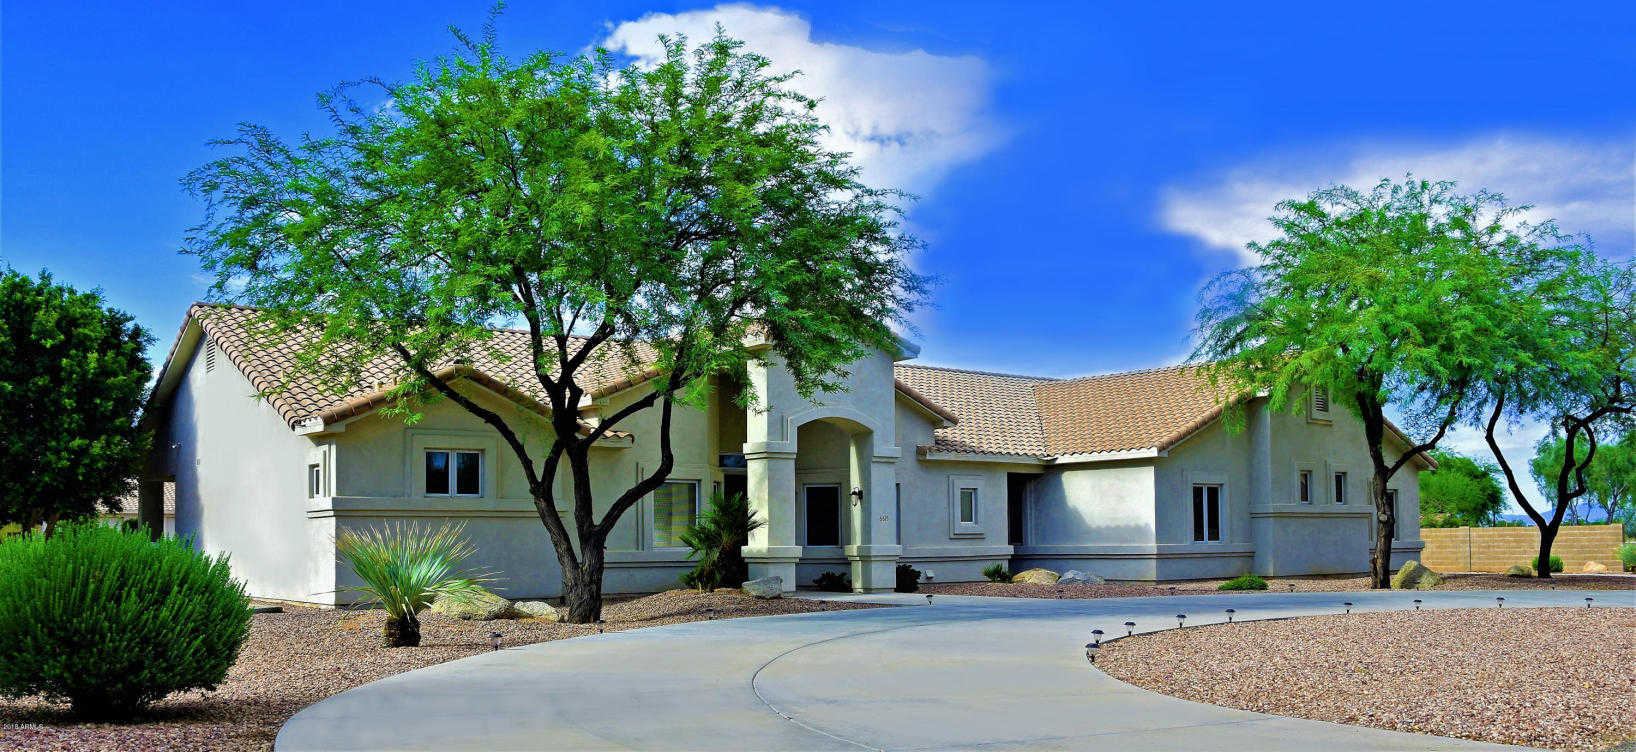 $820,000 - 7Br/5Ba - Home for Sale in Metes And Bounds, Glendale